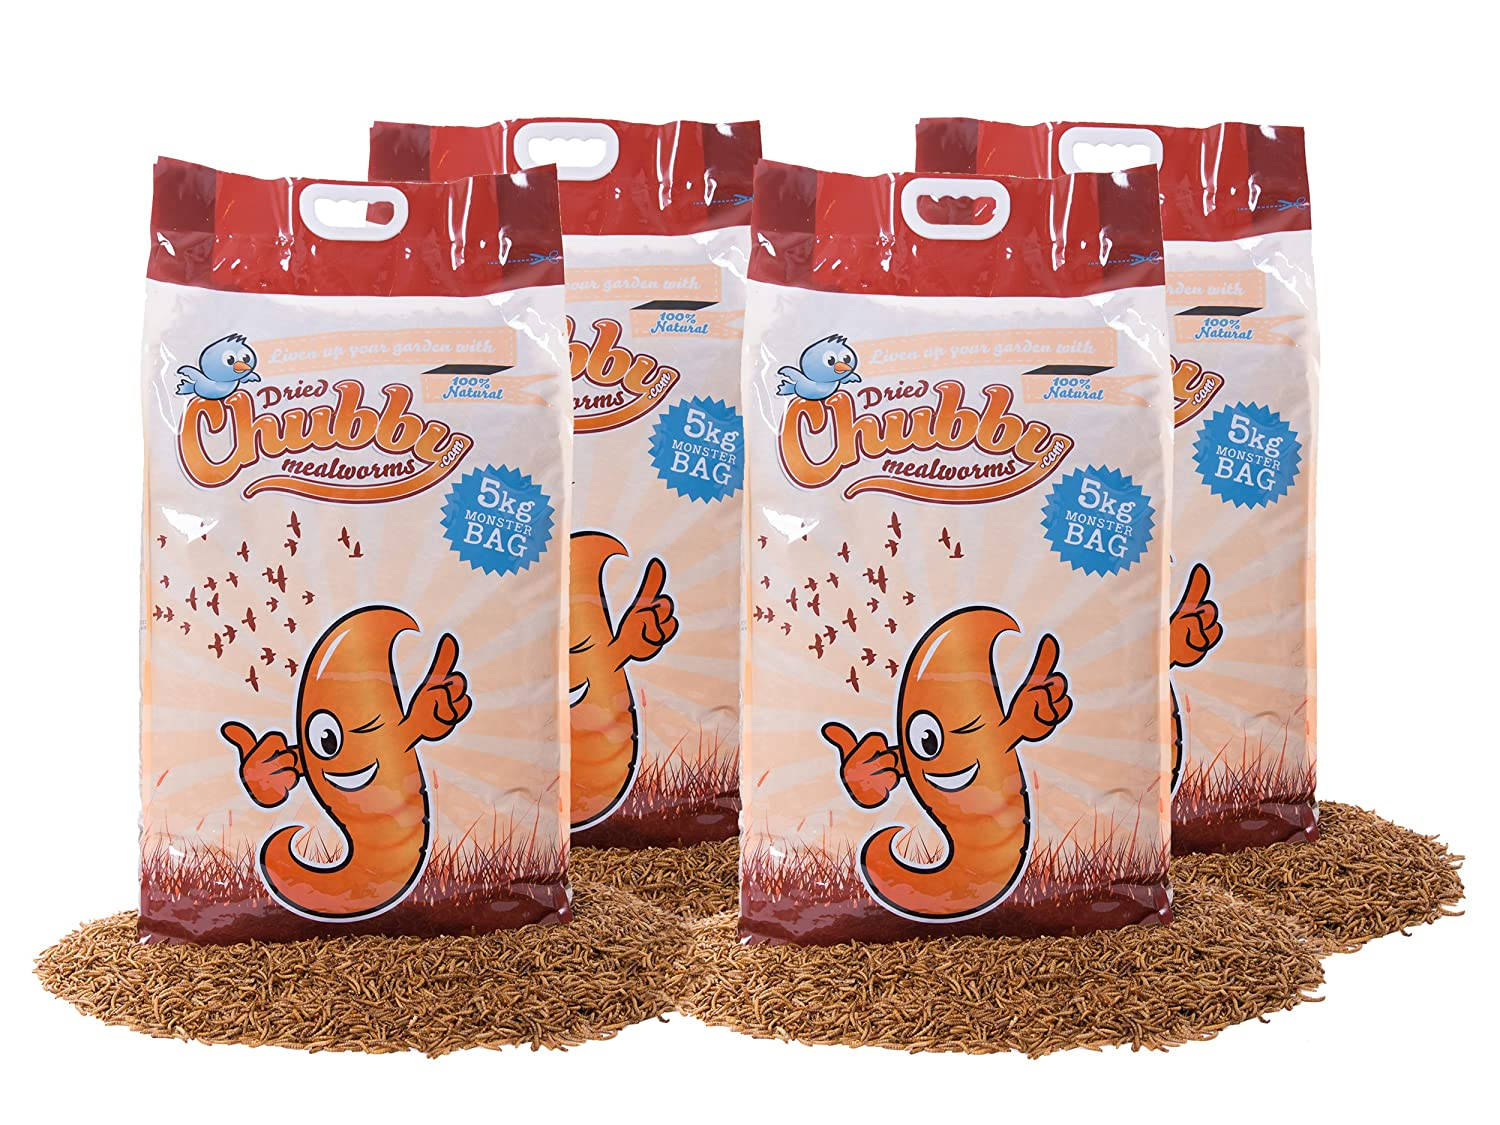 20Kg Chubby Dried Mealworms for Wild Birds Only